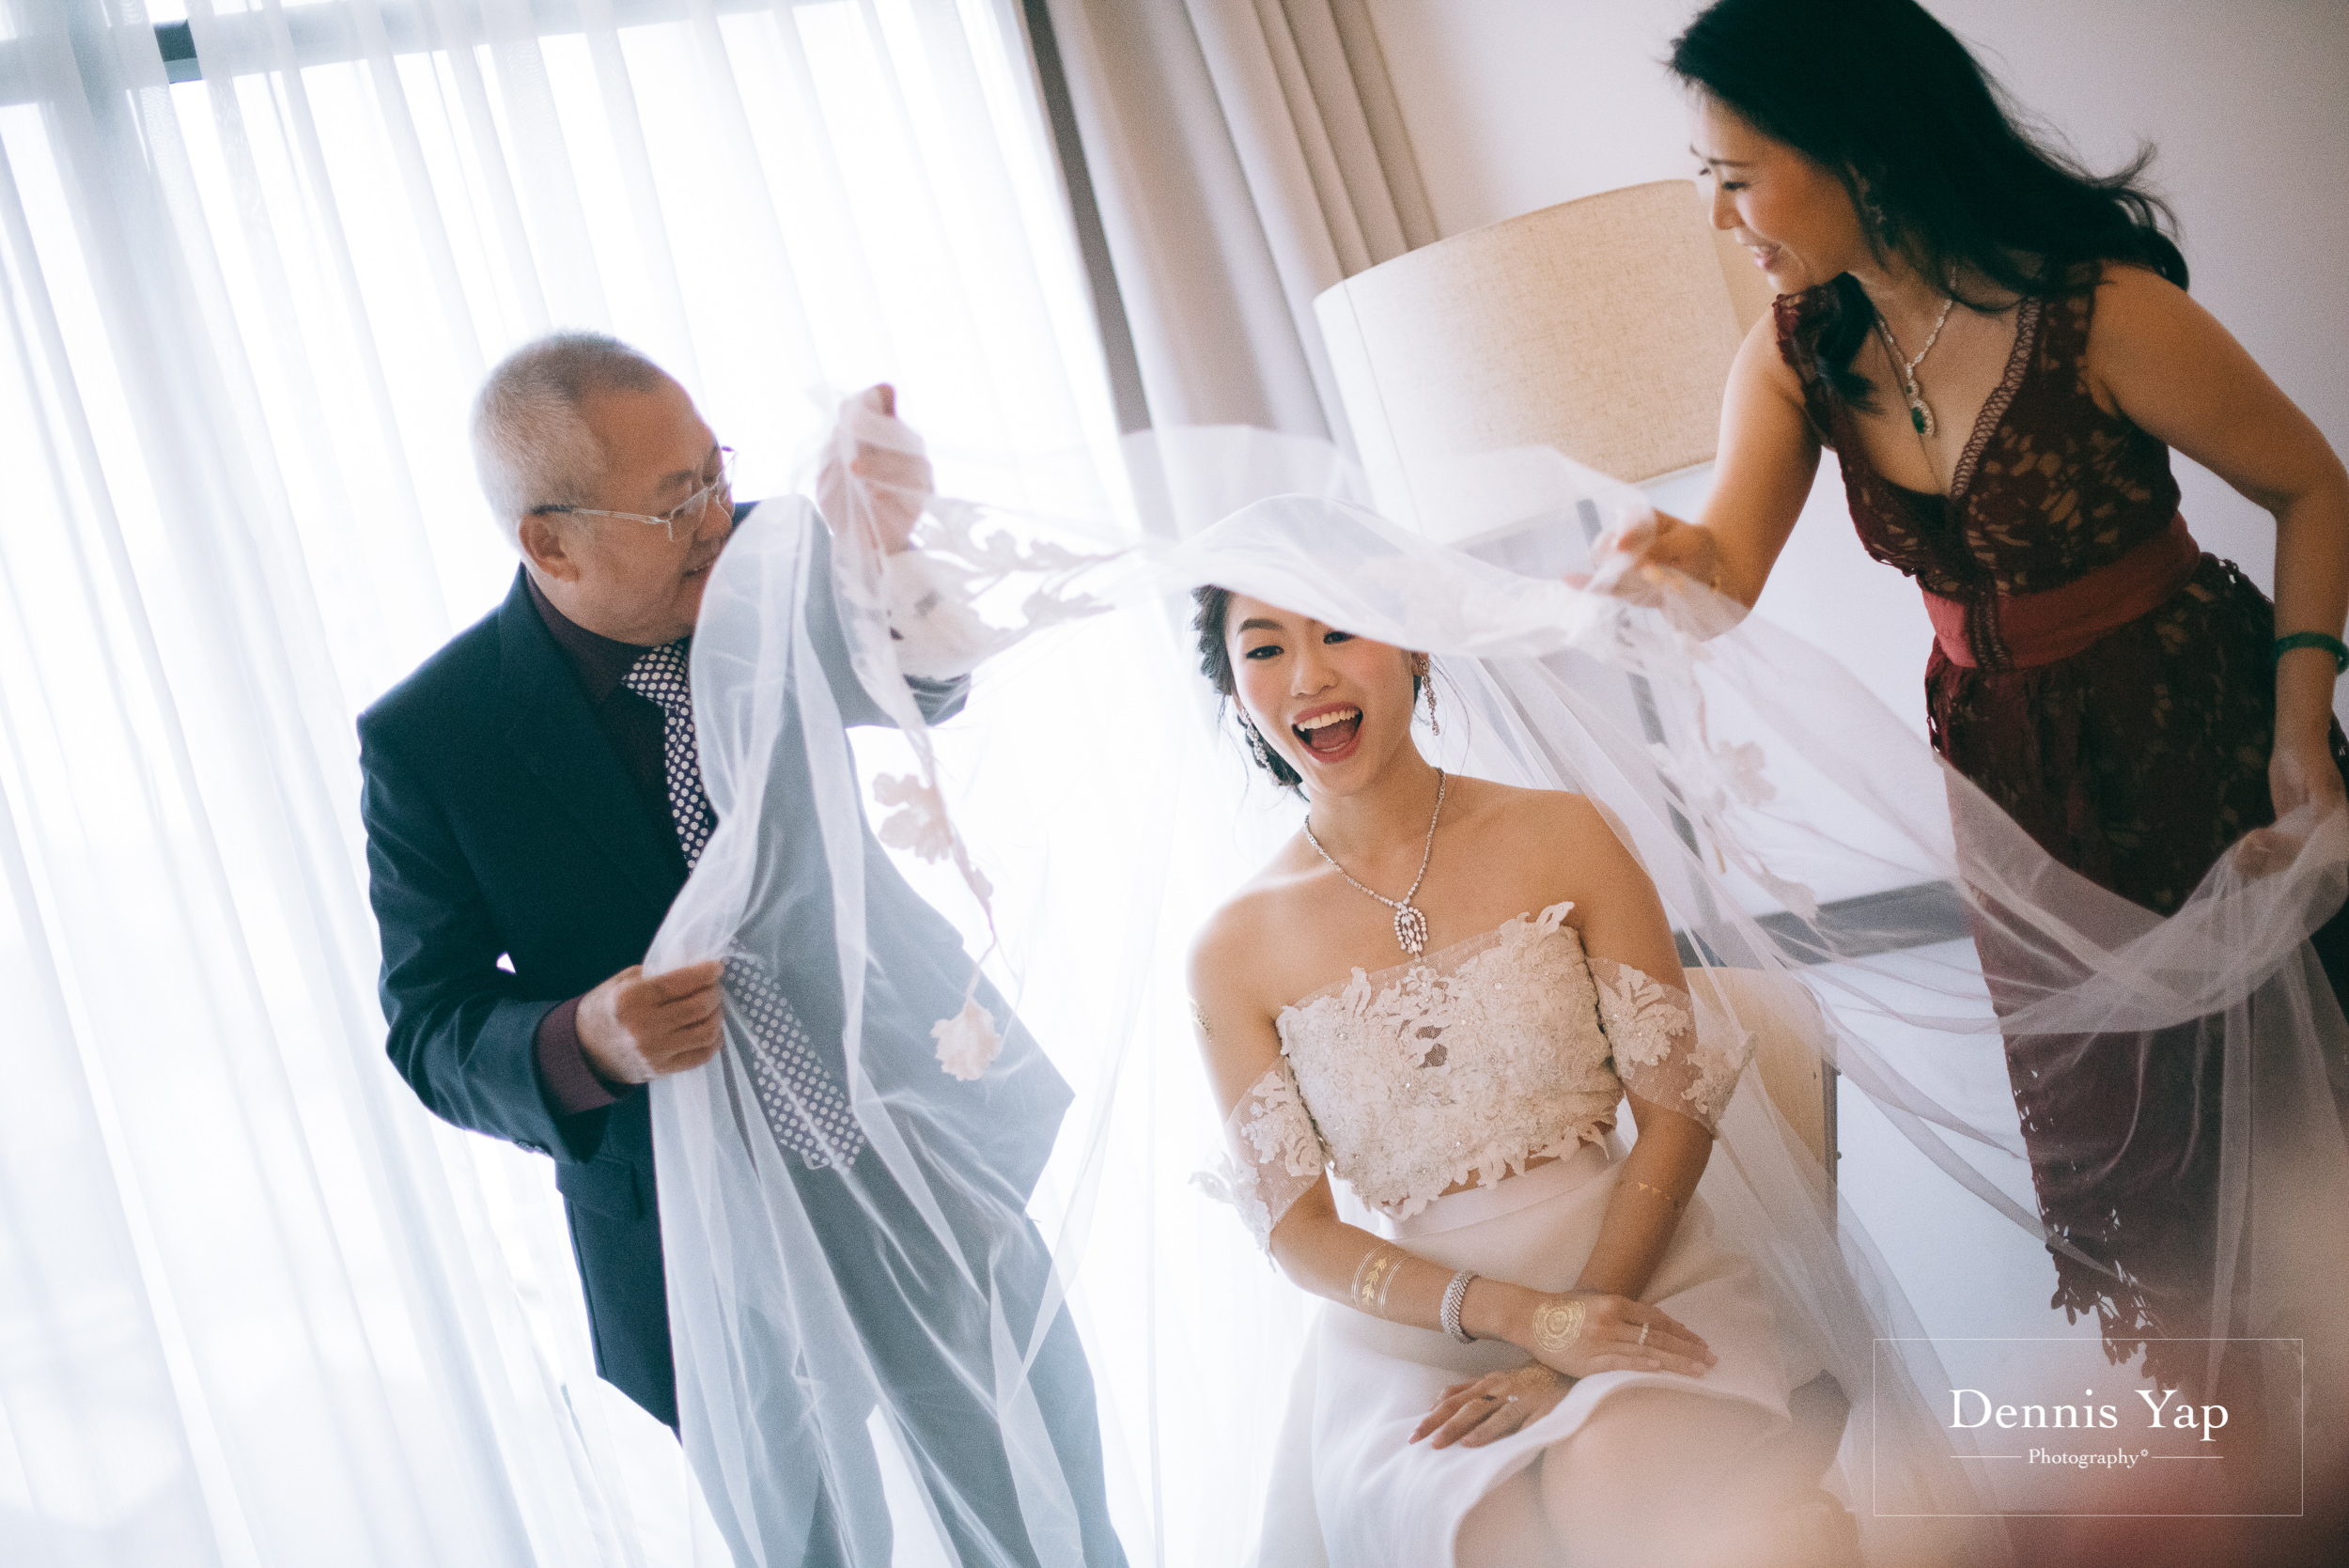 ser siang sze liang rom registration of marriage KL journal hotel dennis yap photography-3.jpg